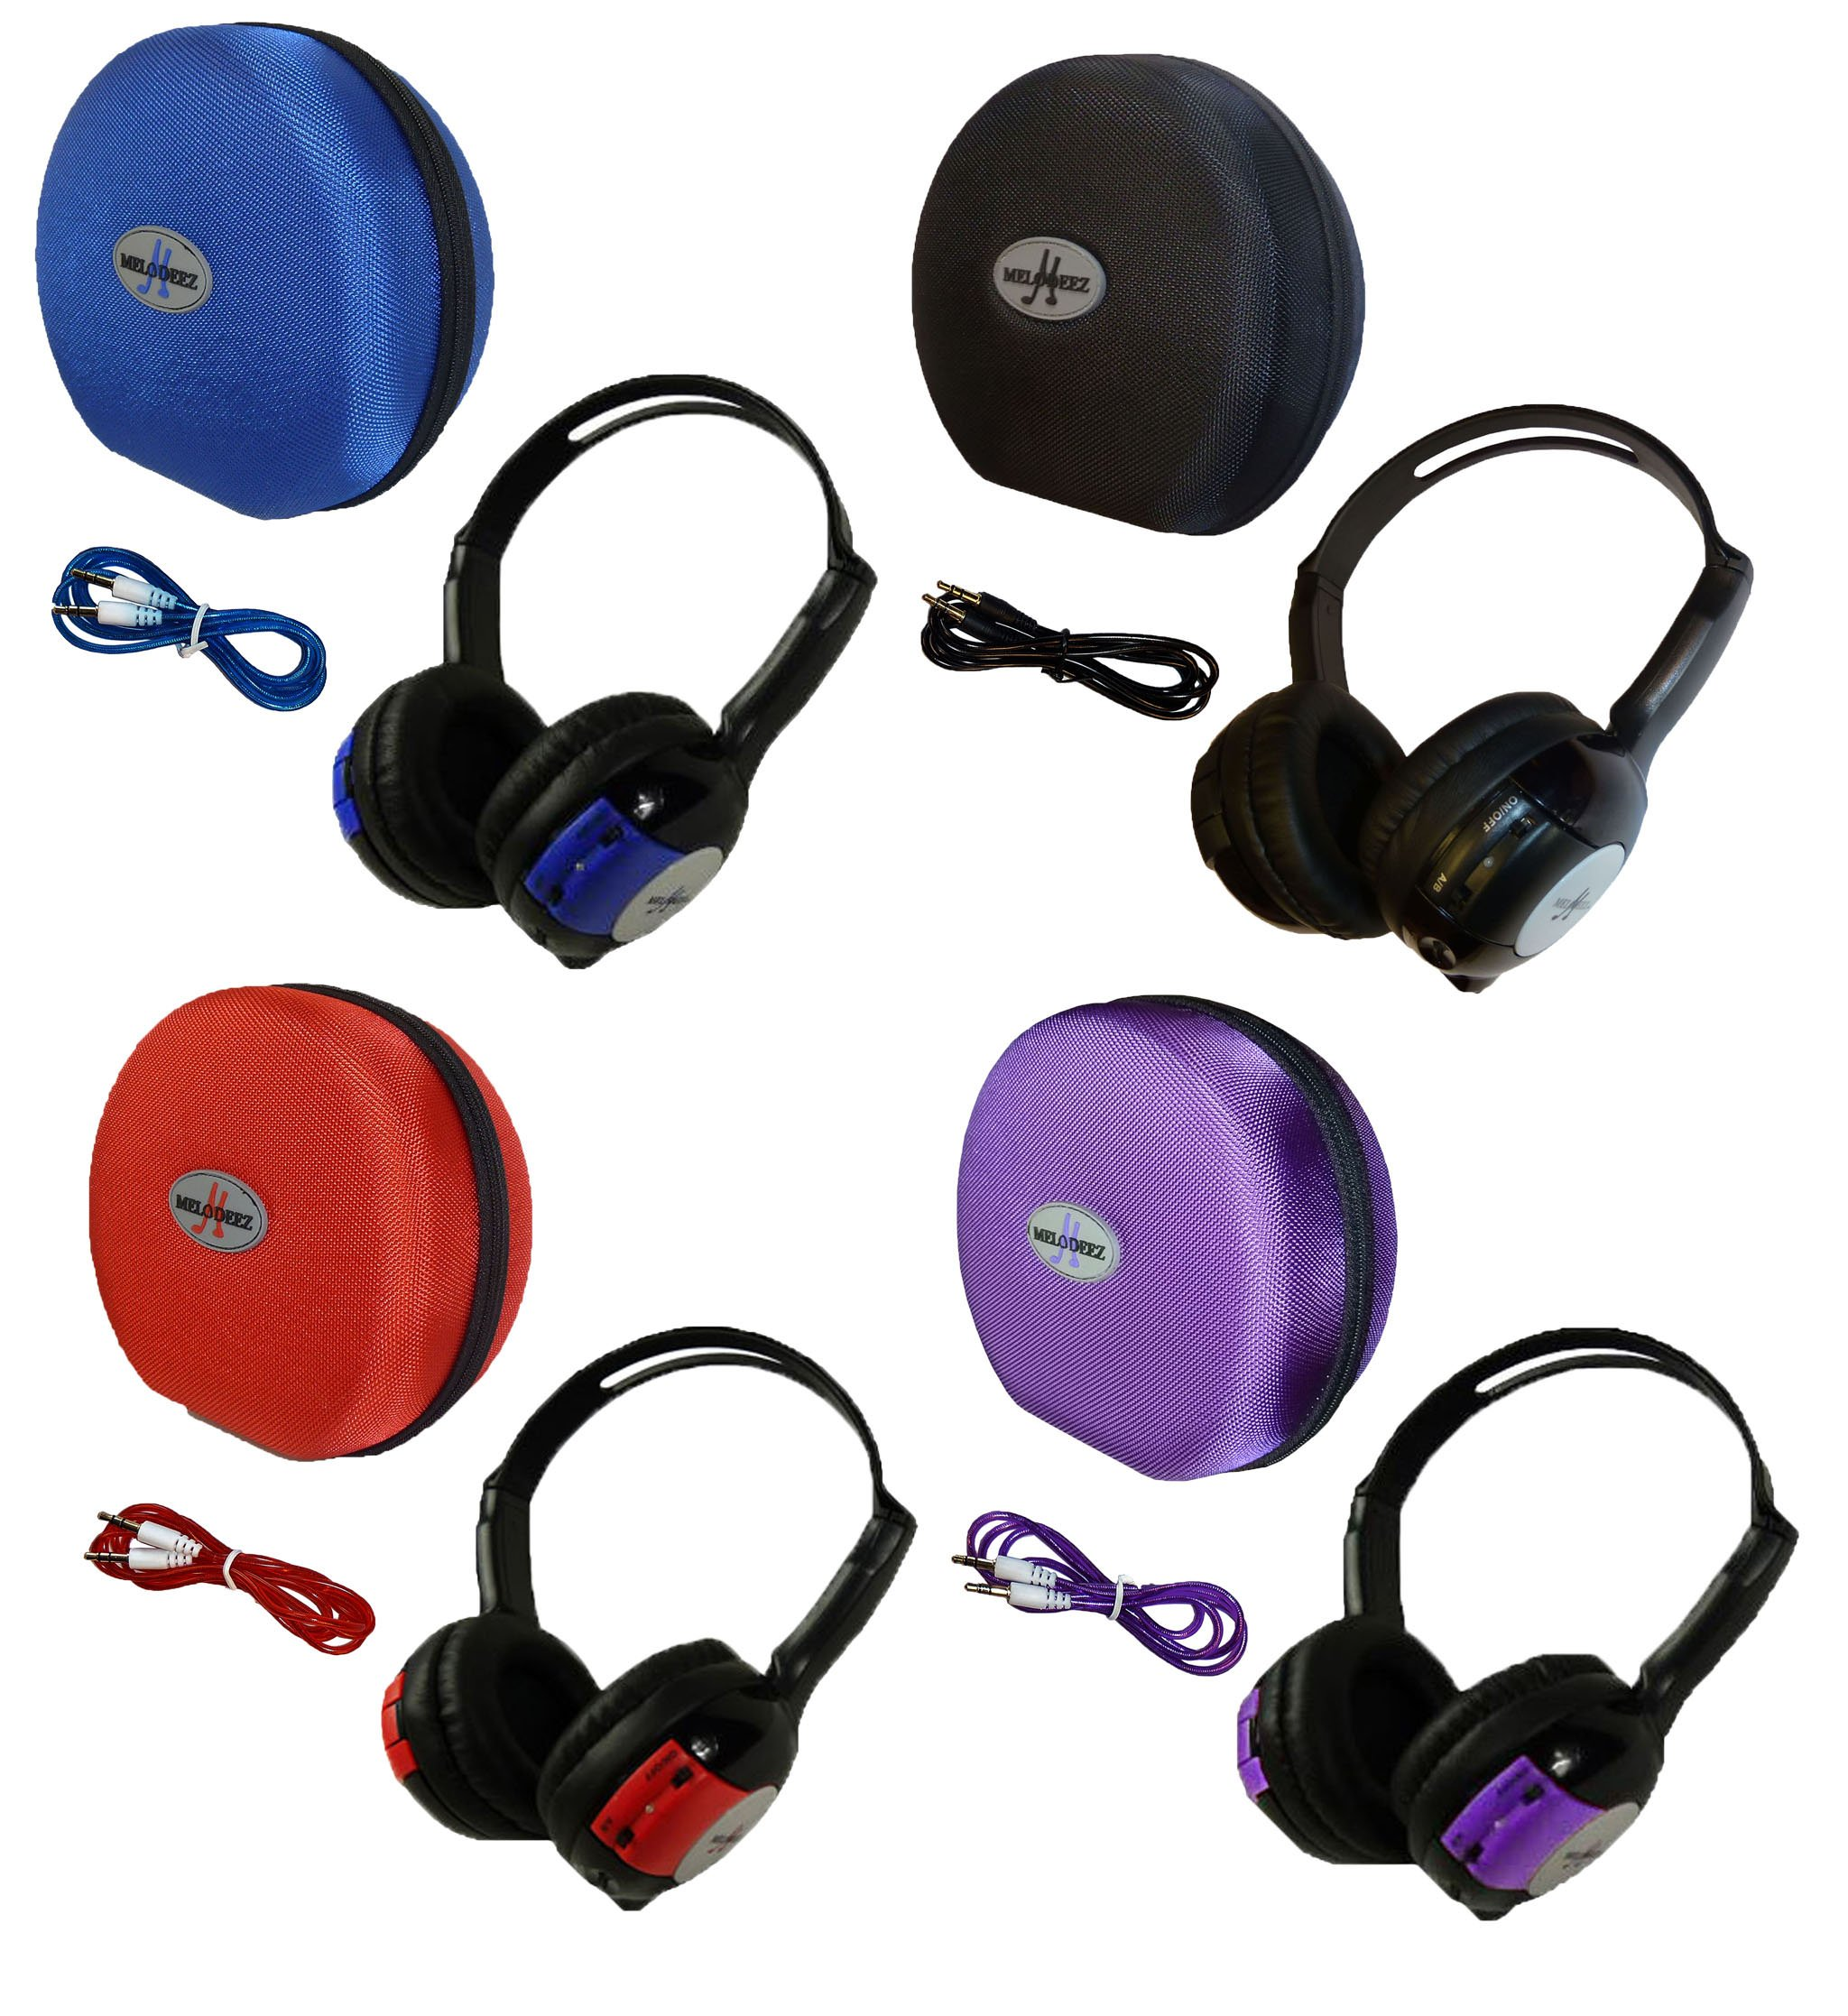 4 Pack Kid Sized Wireless Infrared Car DVD IR Automotive Colored Adjustable 2 Channel Headphones With Case and 3.5mm Auxiliary Cord. Note: Will Not Work on 2017+ GM's or Pacifica by Wisconsin Auto Supply